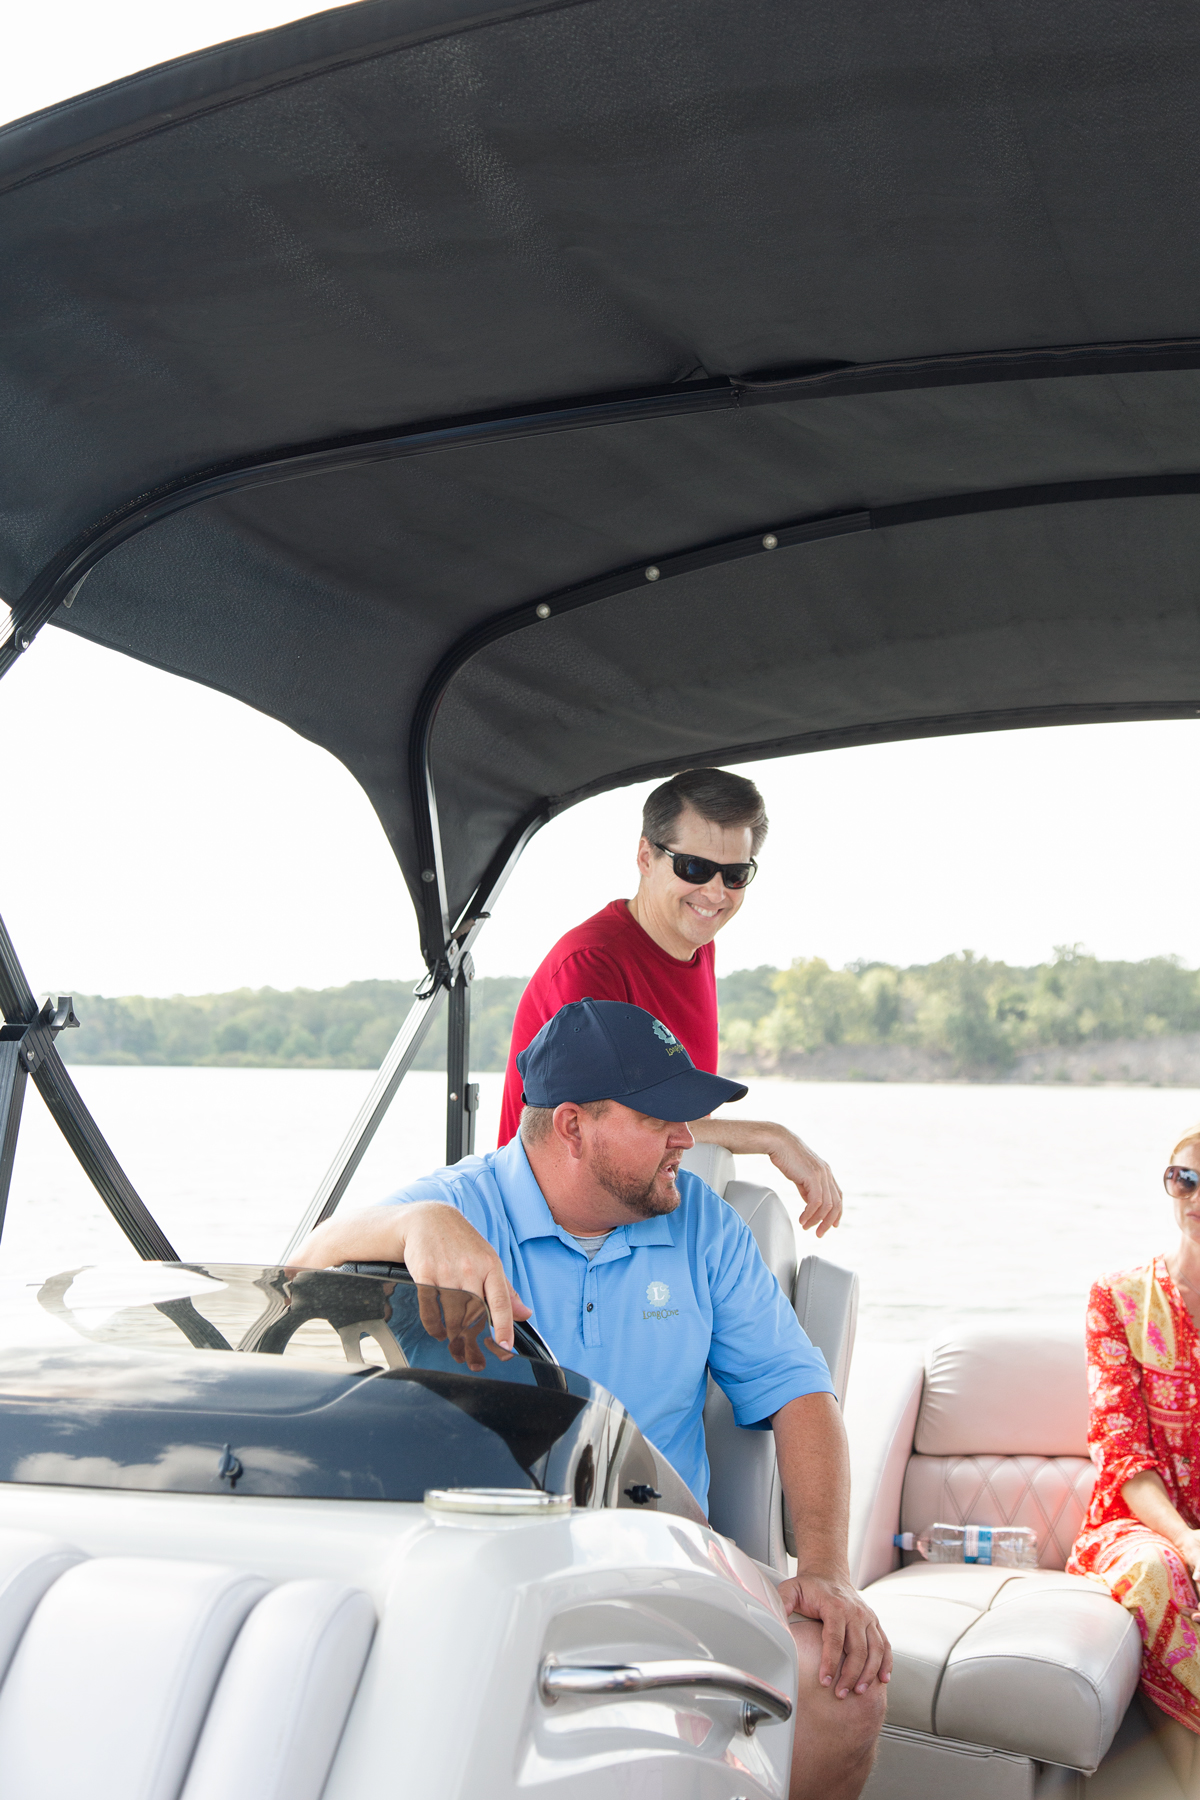 man in blue shirt driving a boat with a man in a red shirt standing behind him